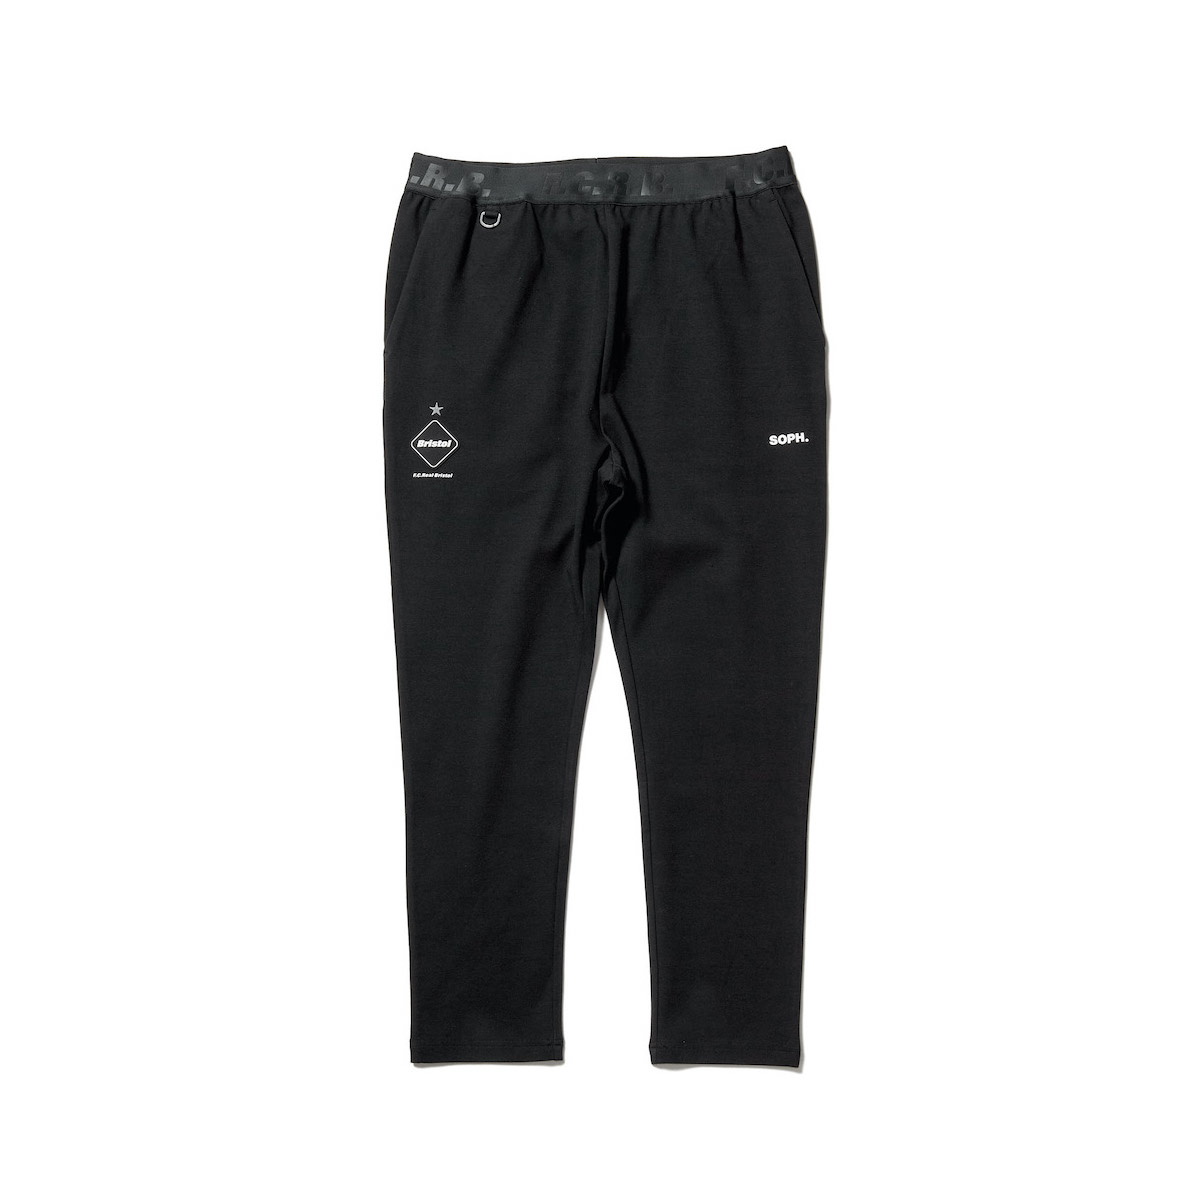 F.C.Real Bristol / RELAX FIT LONG PANTS (Black)正面